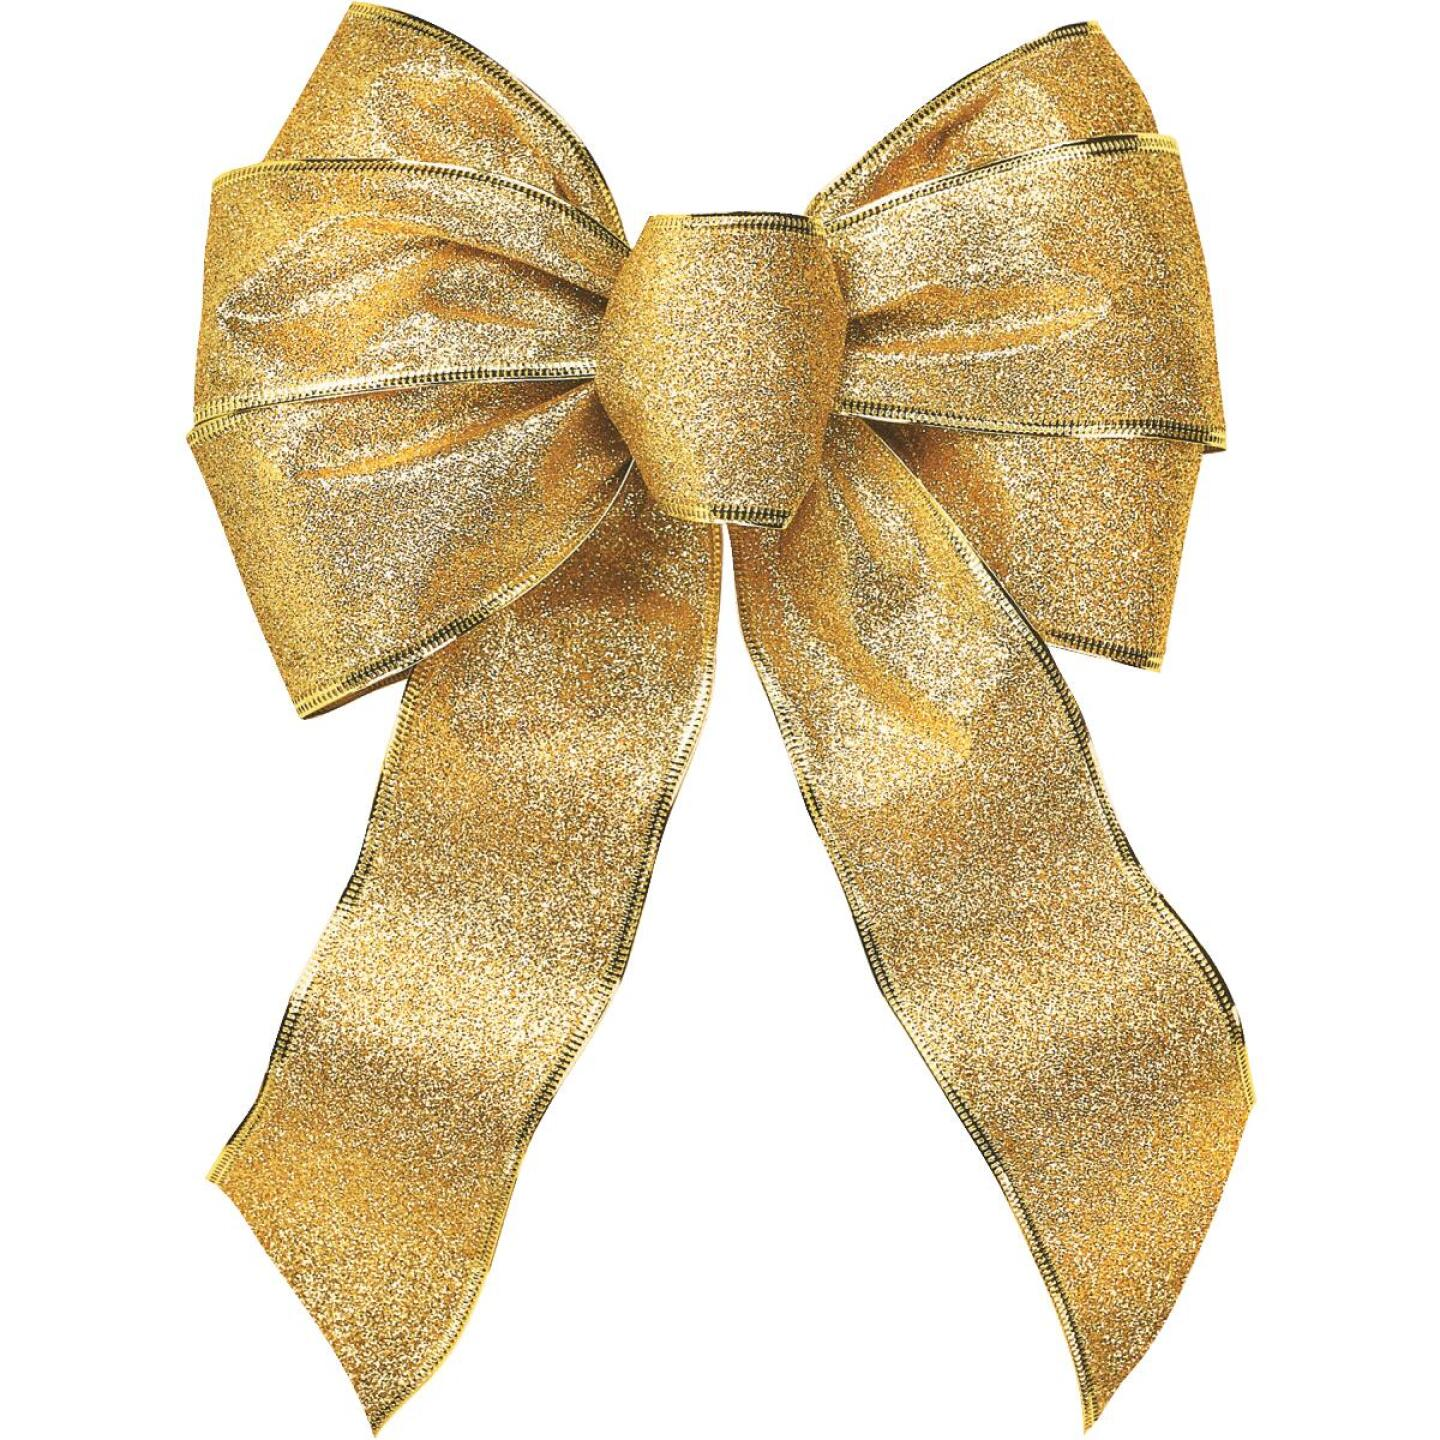 Holiday Trims 7-Loop 8-1/2 In. W. x 14 In. L. Assorted Glitter Christmas Bow Image 2